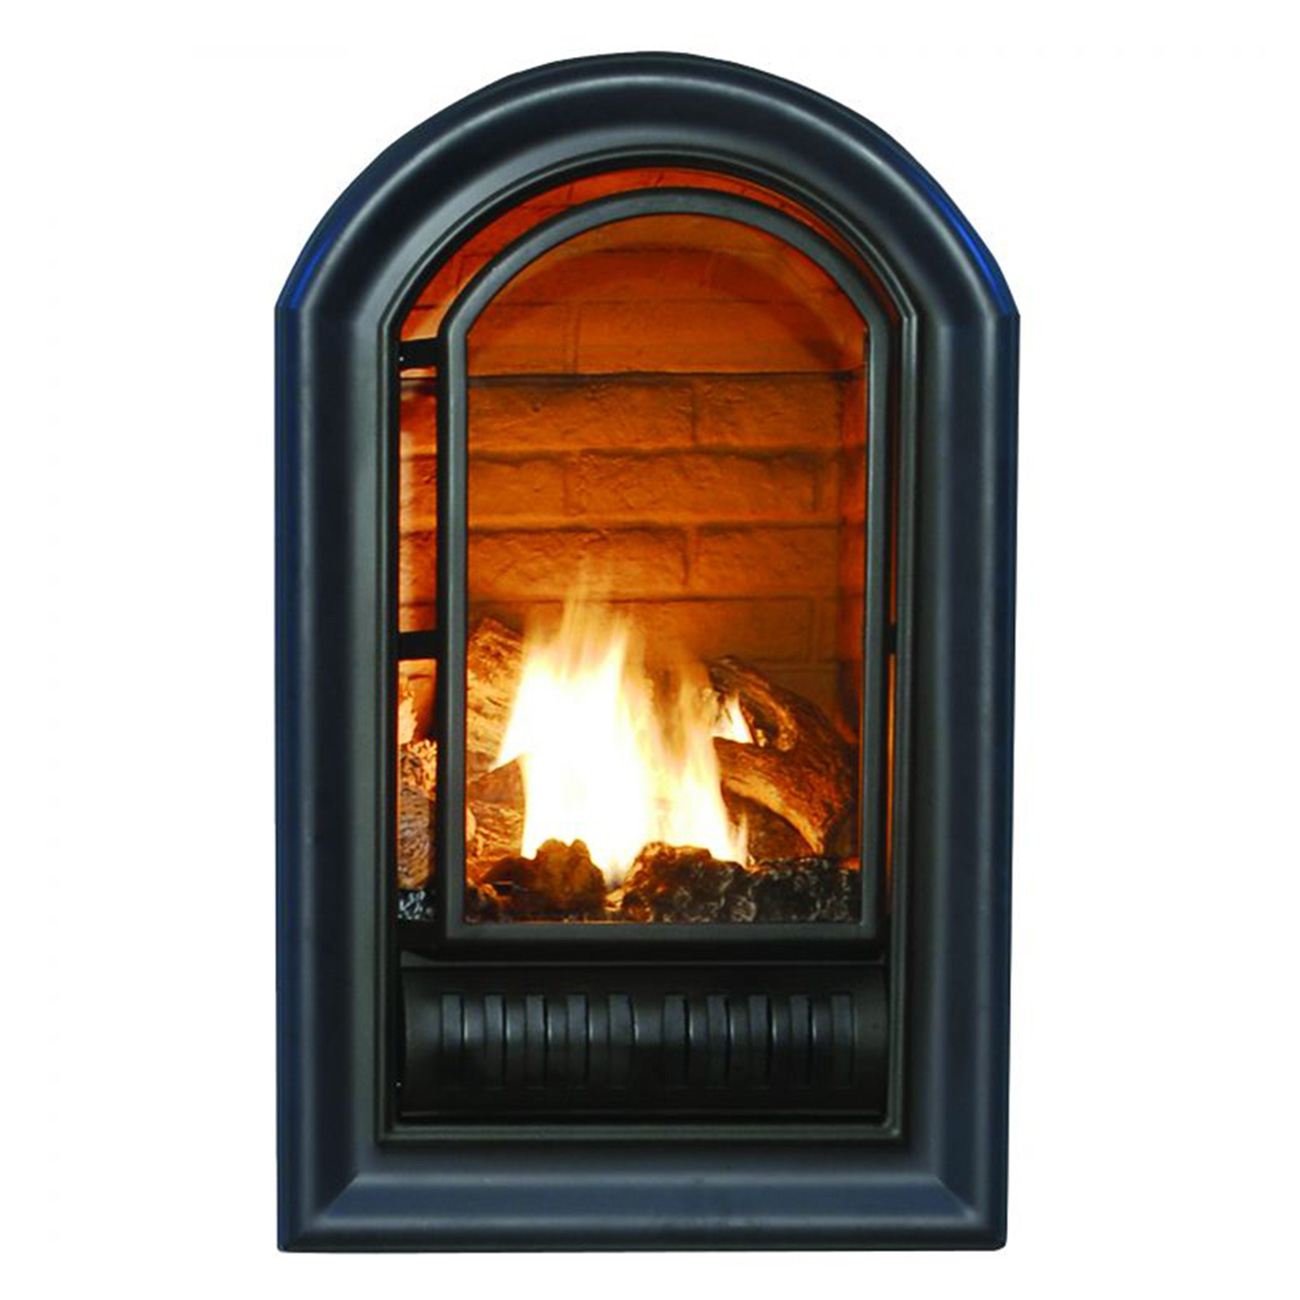 Ventless Gas Fireplace Insert 20 000 Btu Heathsense Ani Procom Heating